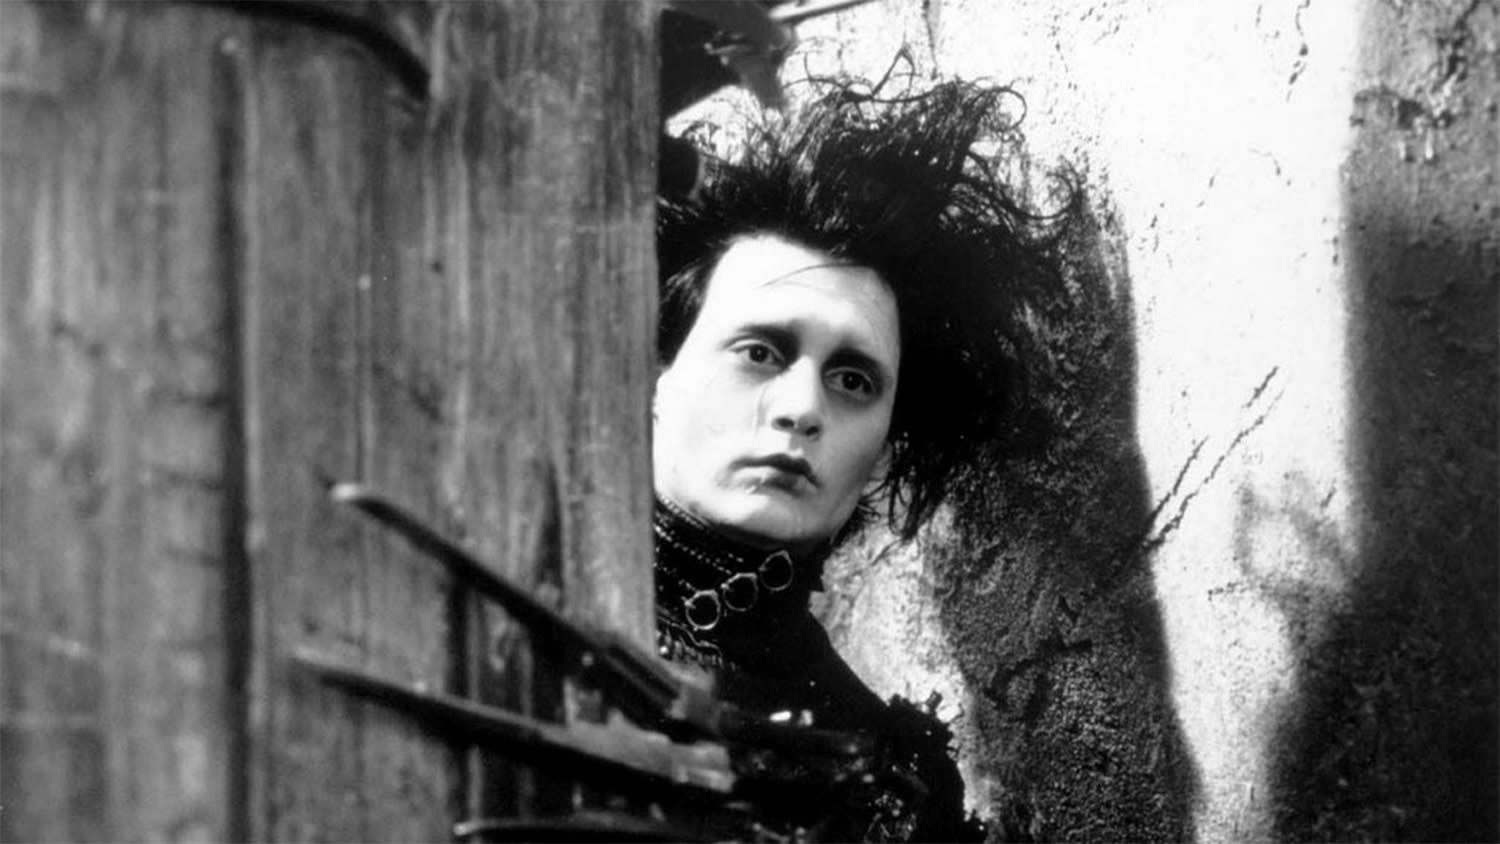 johnny depp as edward scissorhands, german expressionism influence, Dr. Caligari